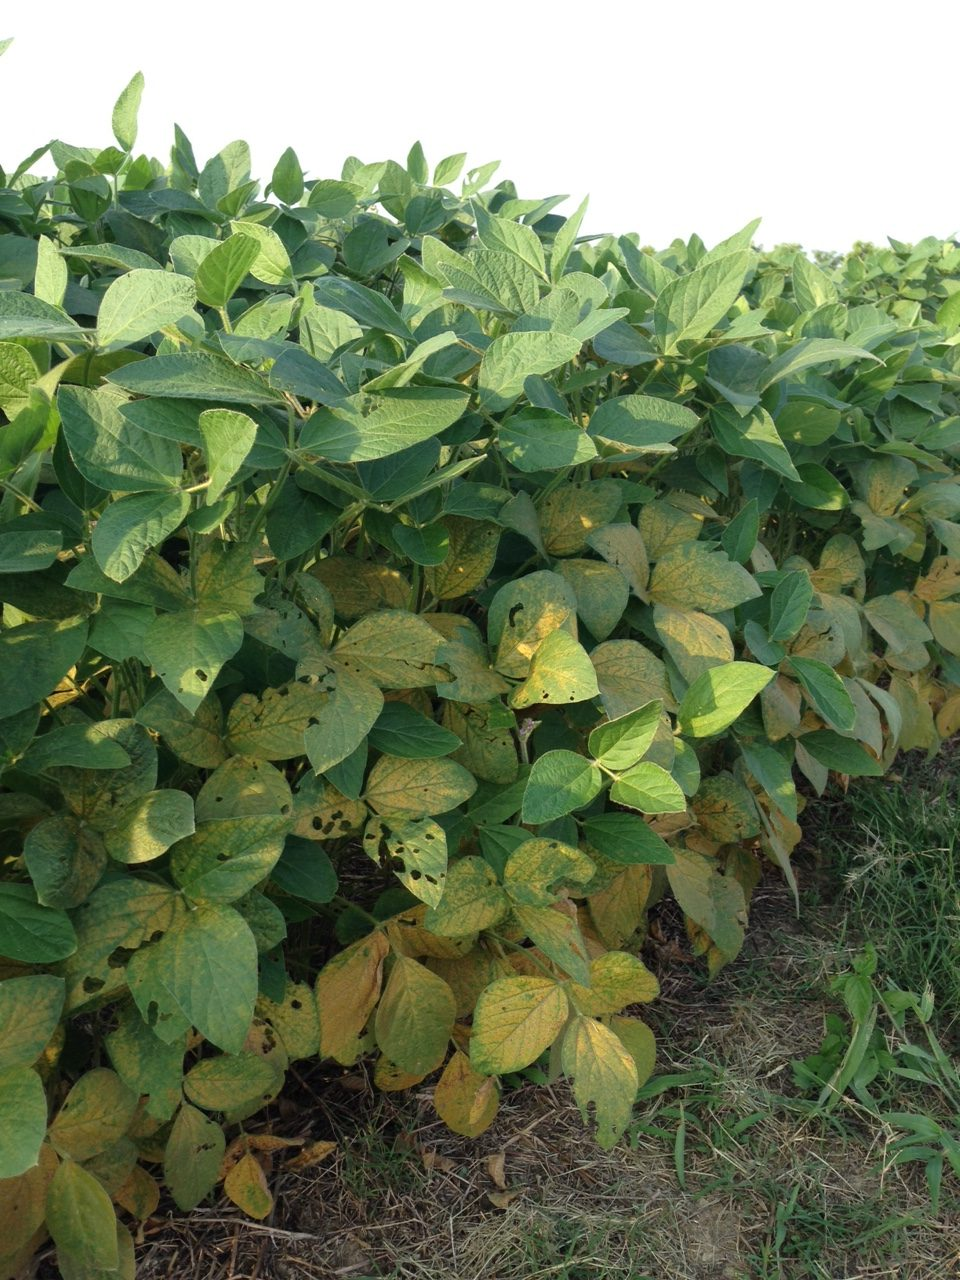 Soybean rust begins on the lower leaves in the canopy.